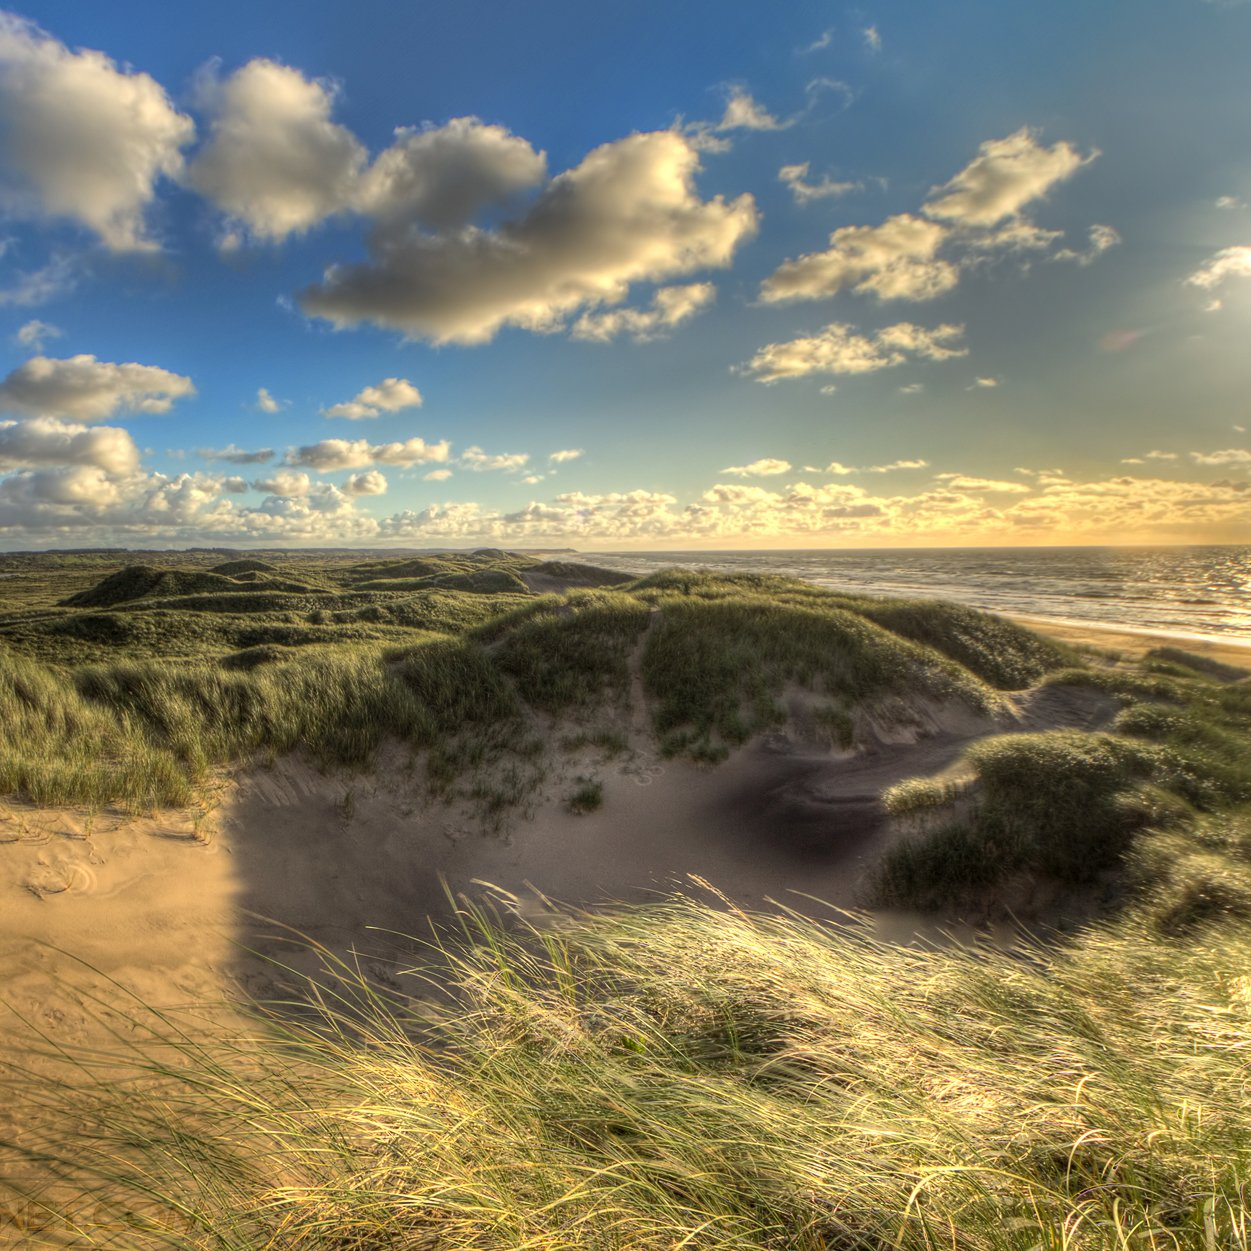 sand dune on north sea coast, Denmark